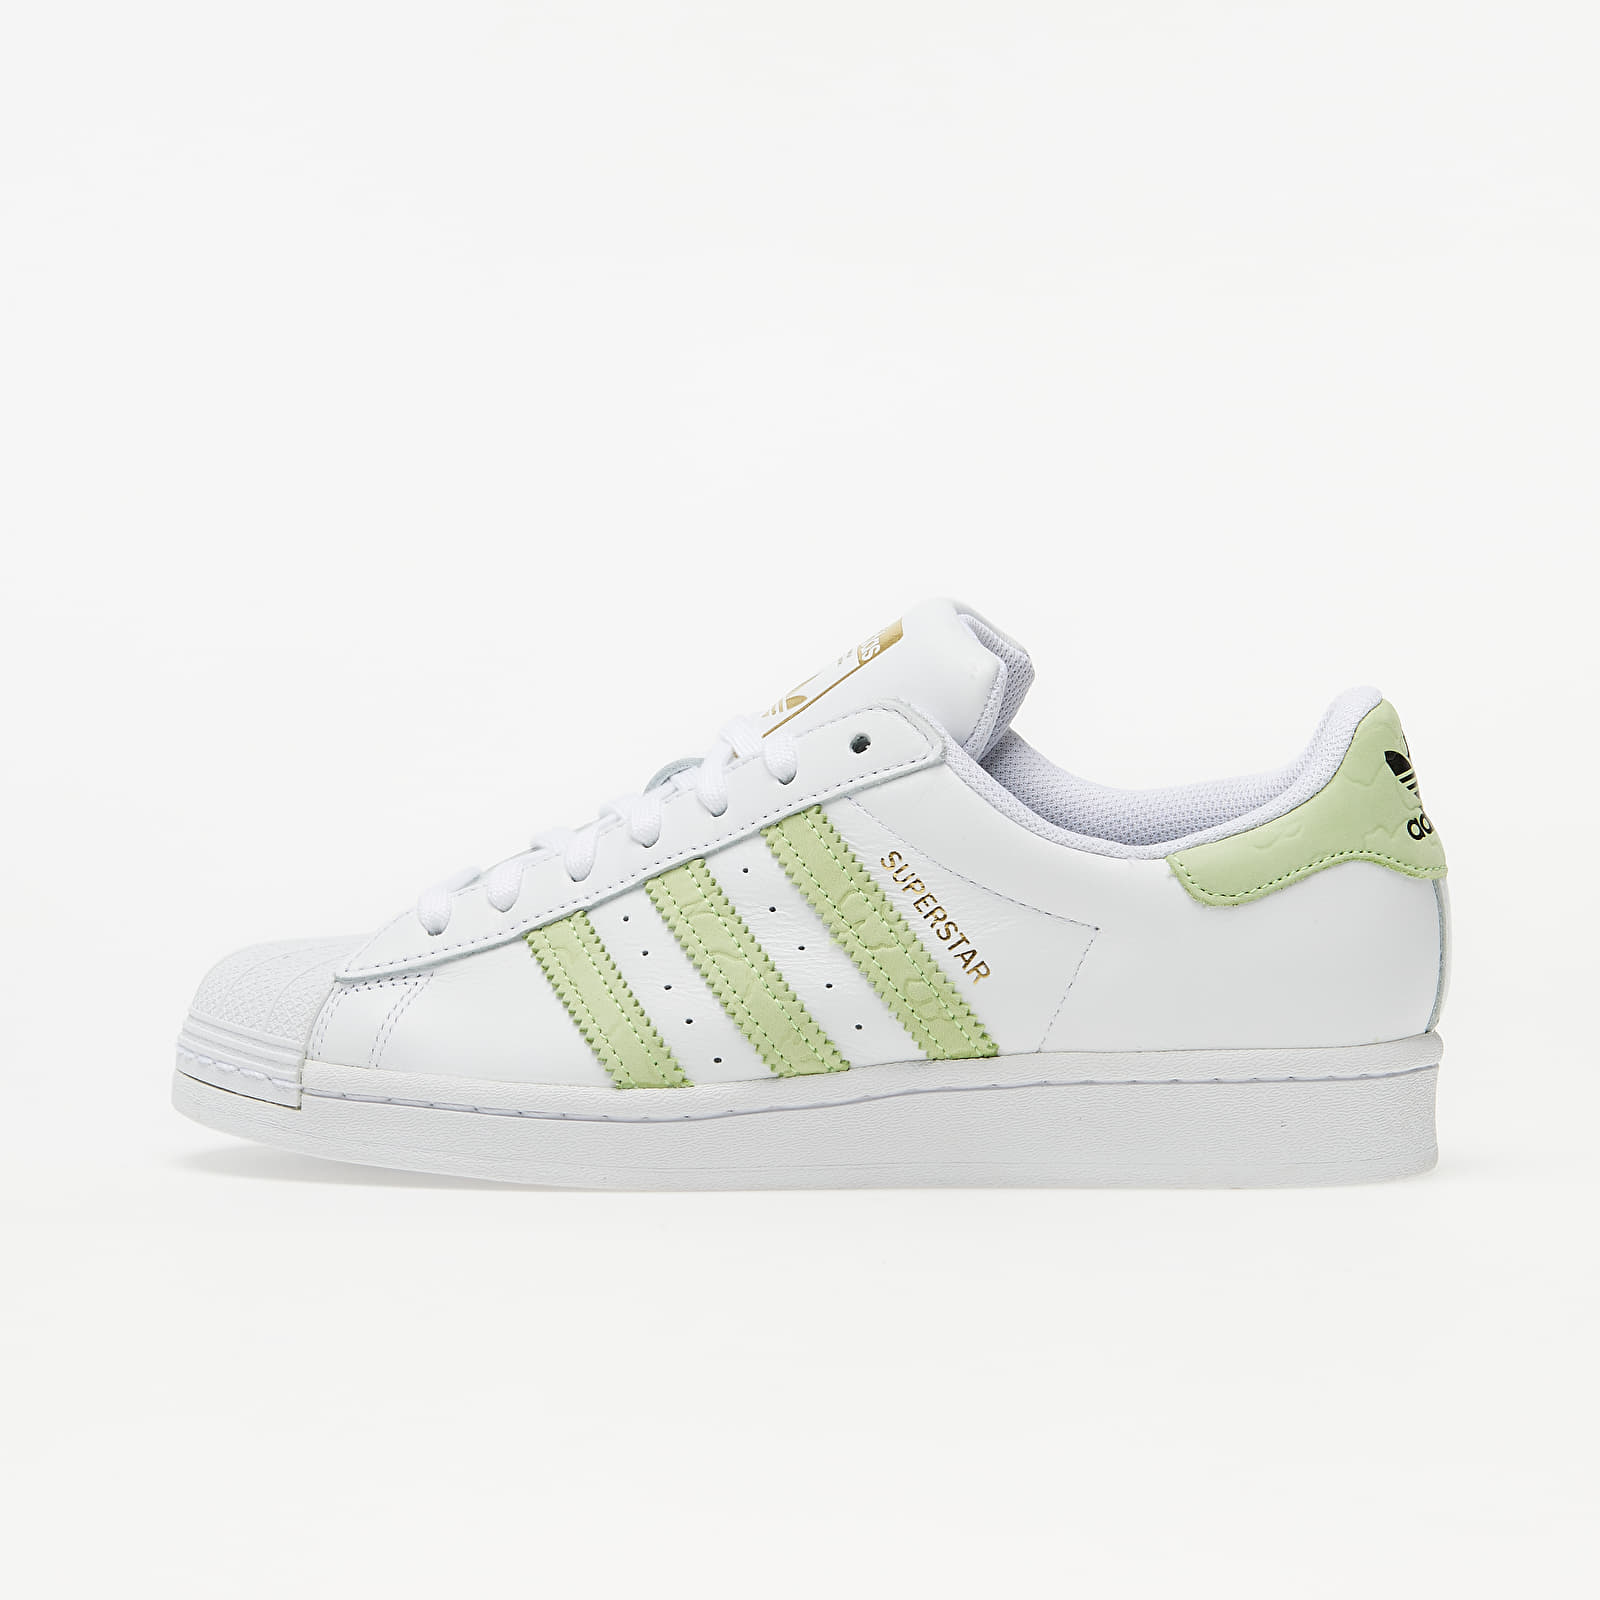 Women's shoes adidas Superstar W Ftw White/ Hi-Res Yellow/ Gold Metalic